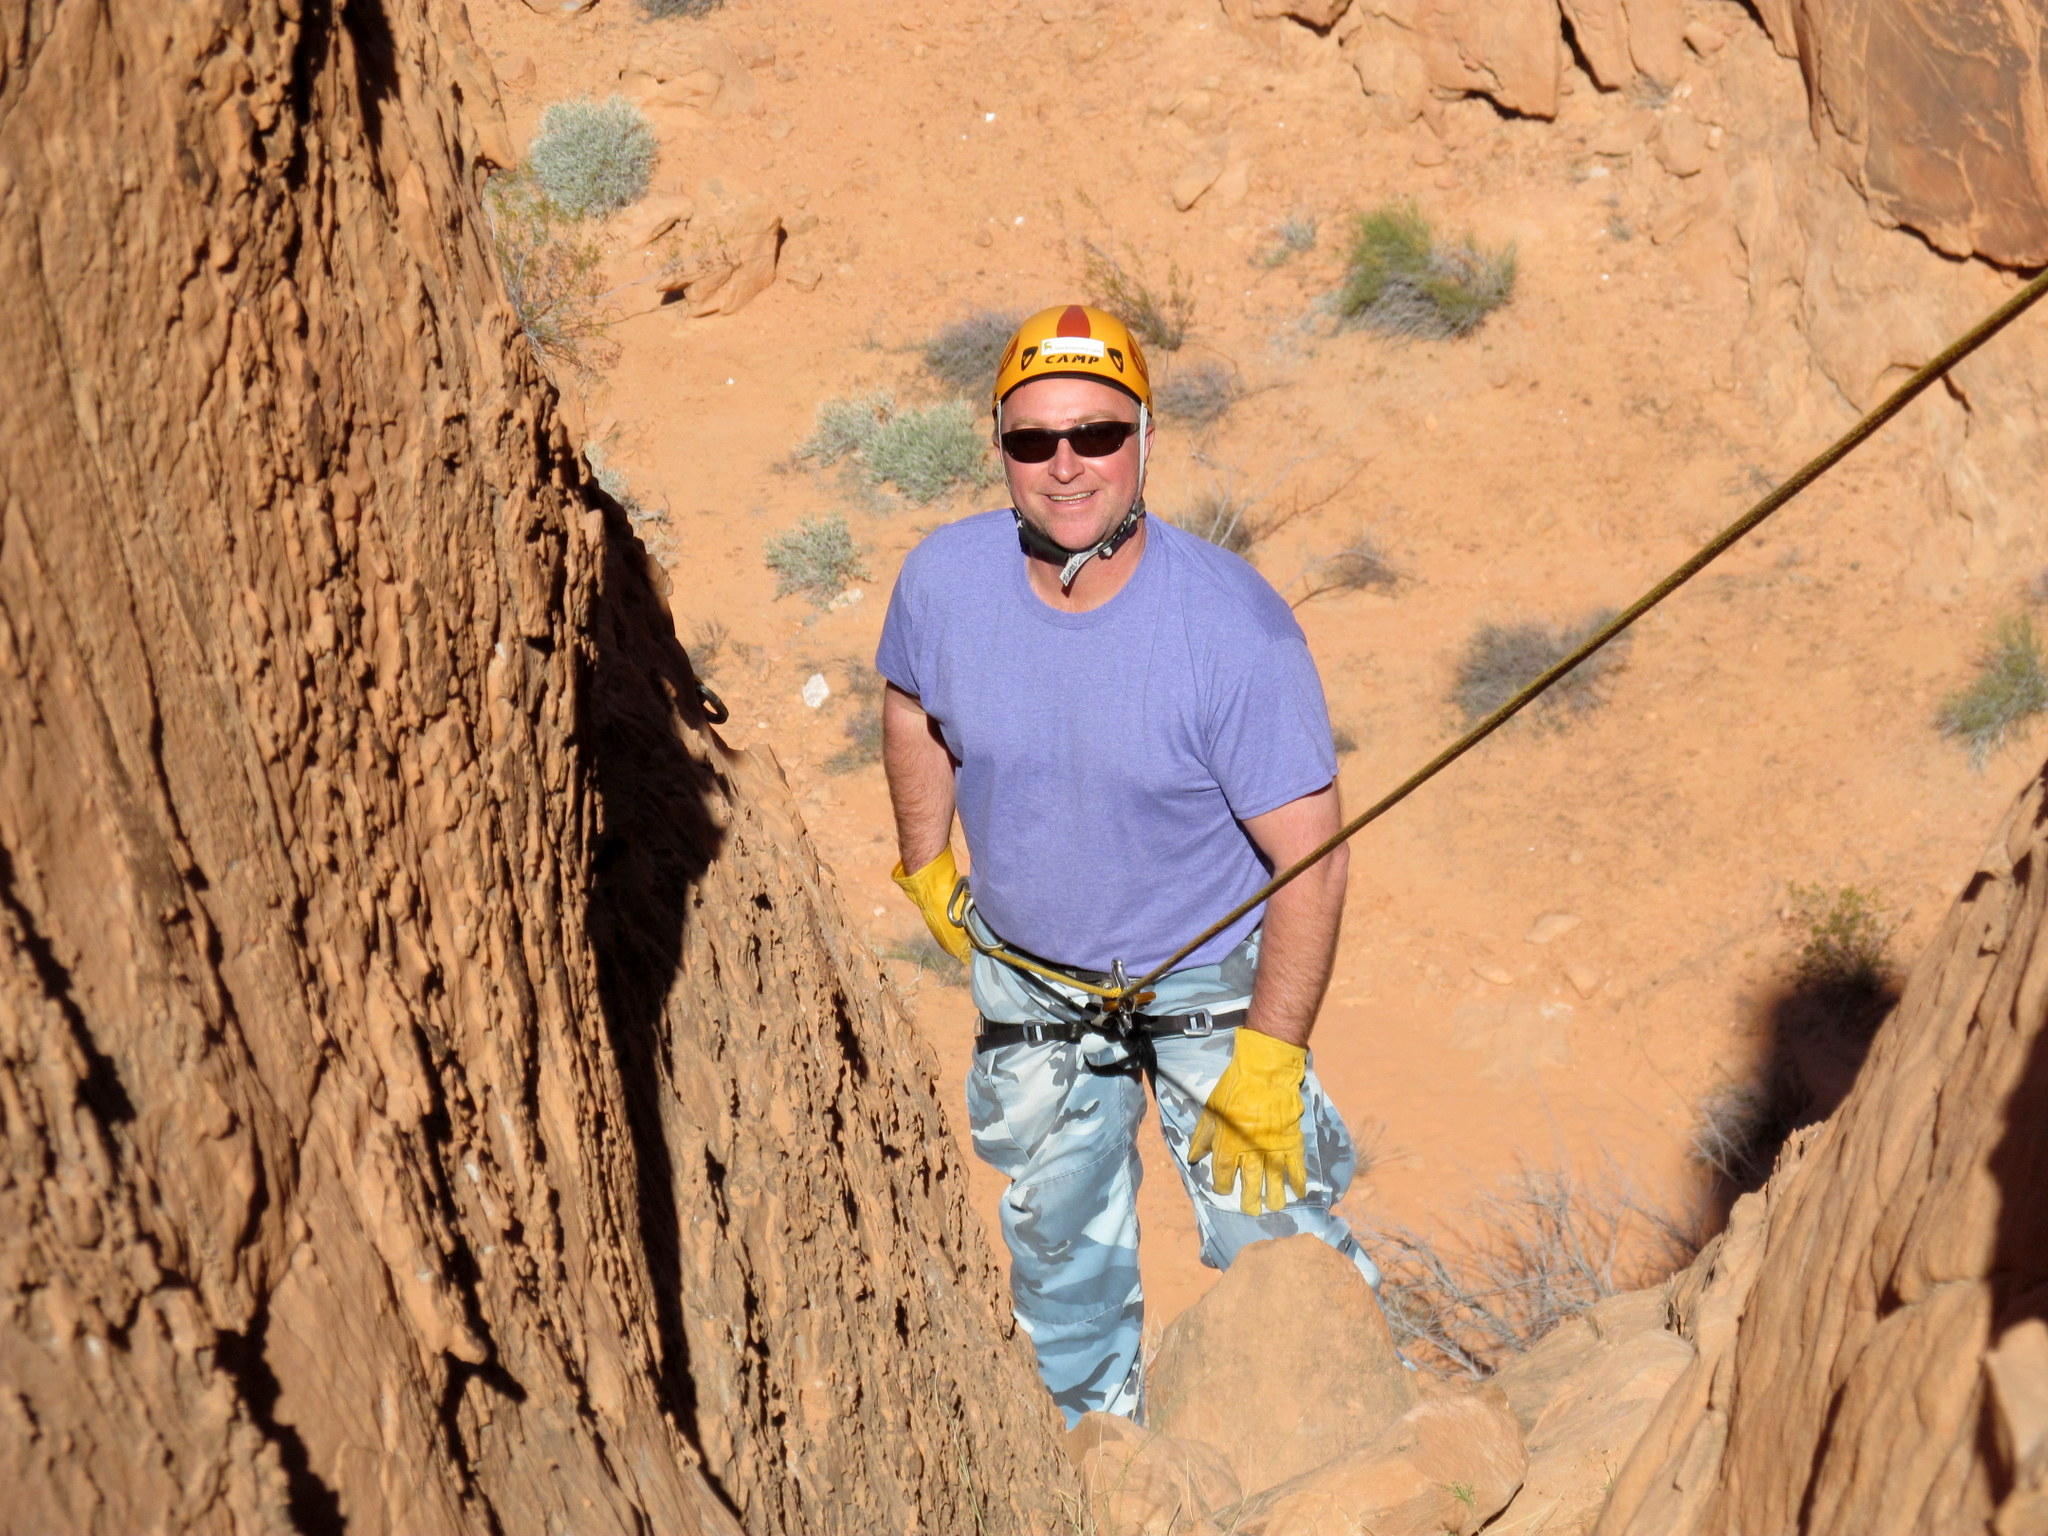 Photo: Eric on rappel